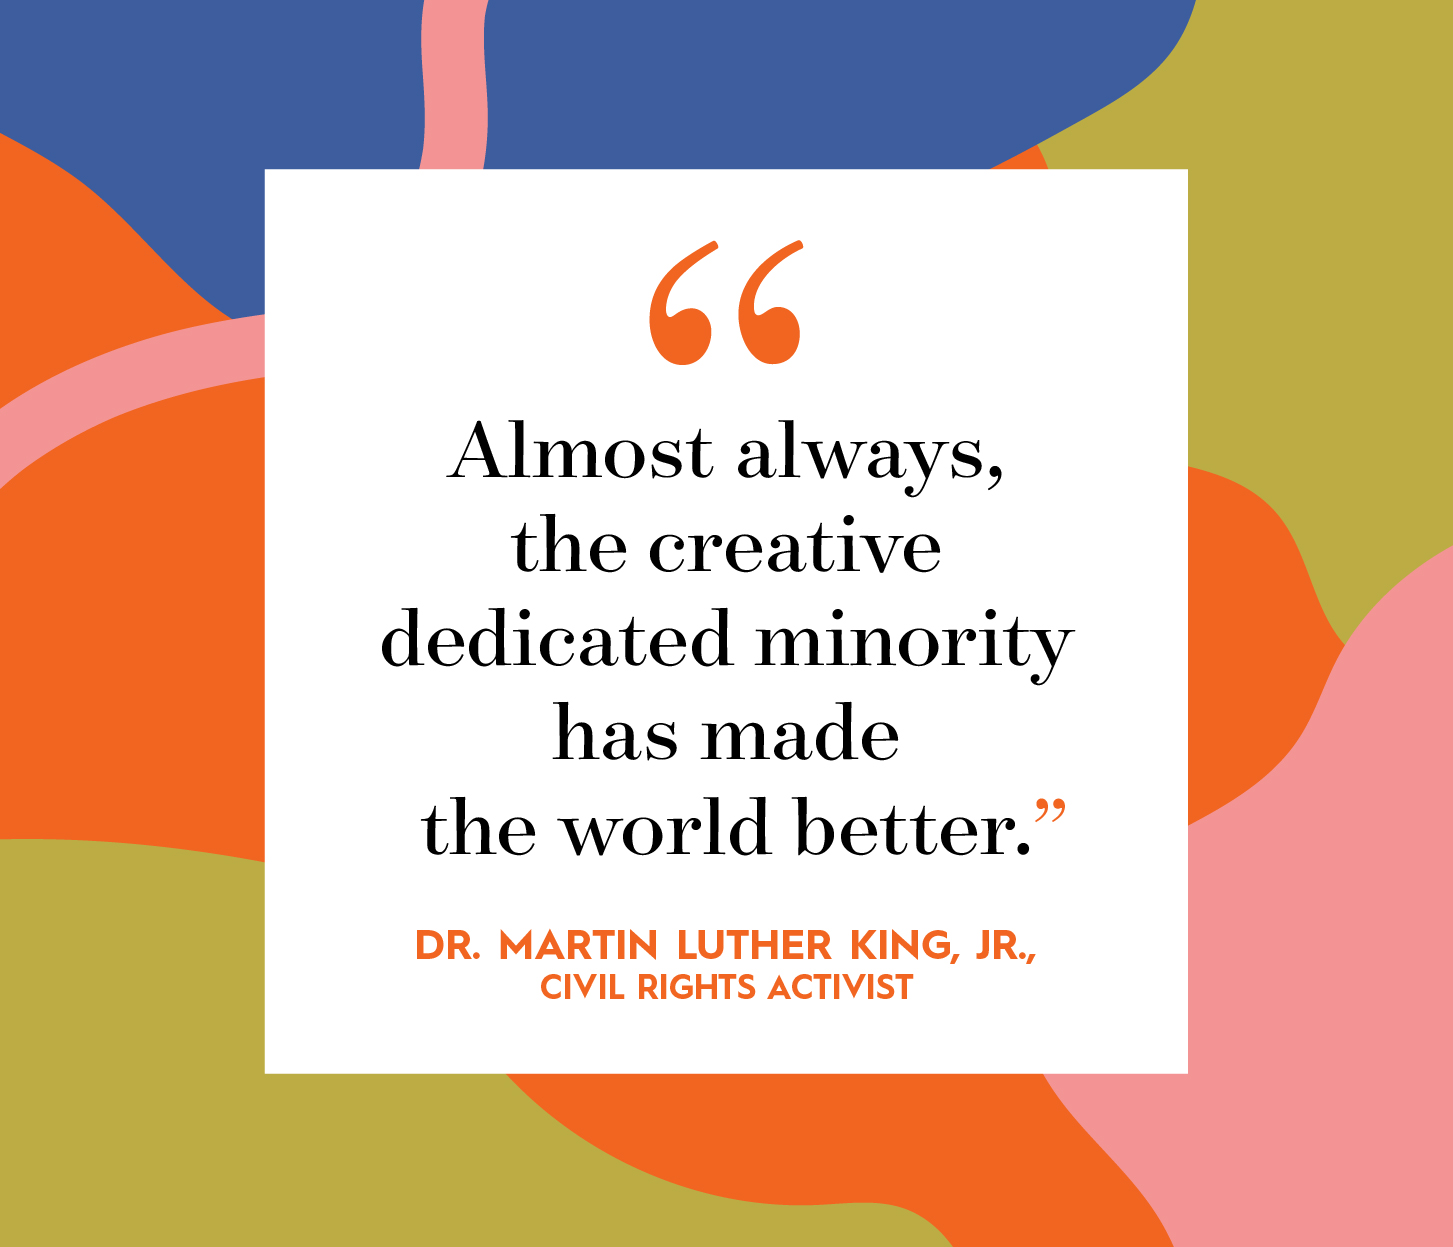 Dr Martin Luther King quote on multicolor background